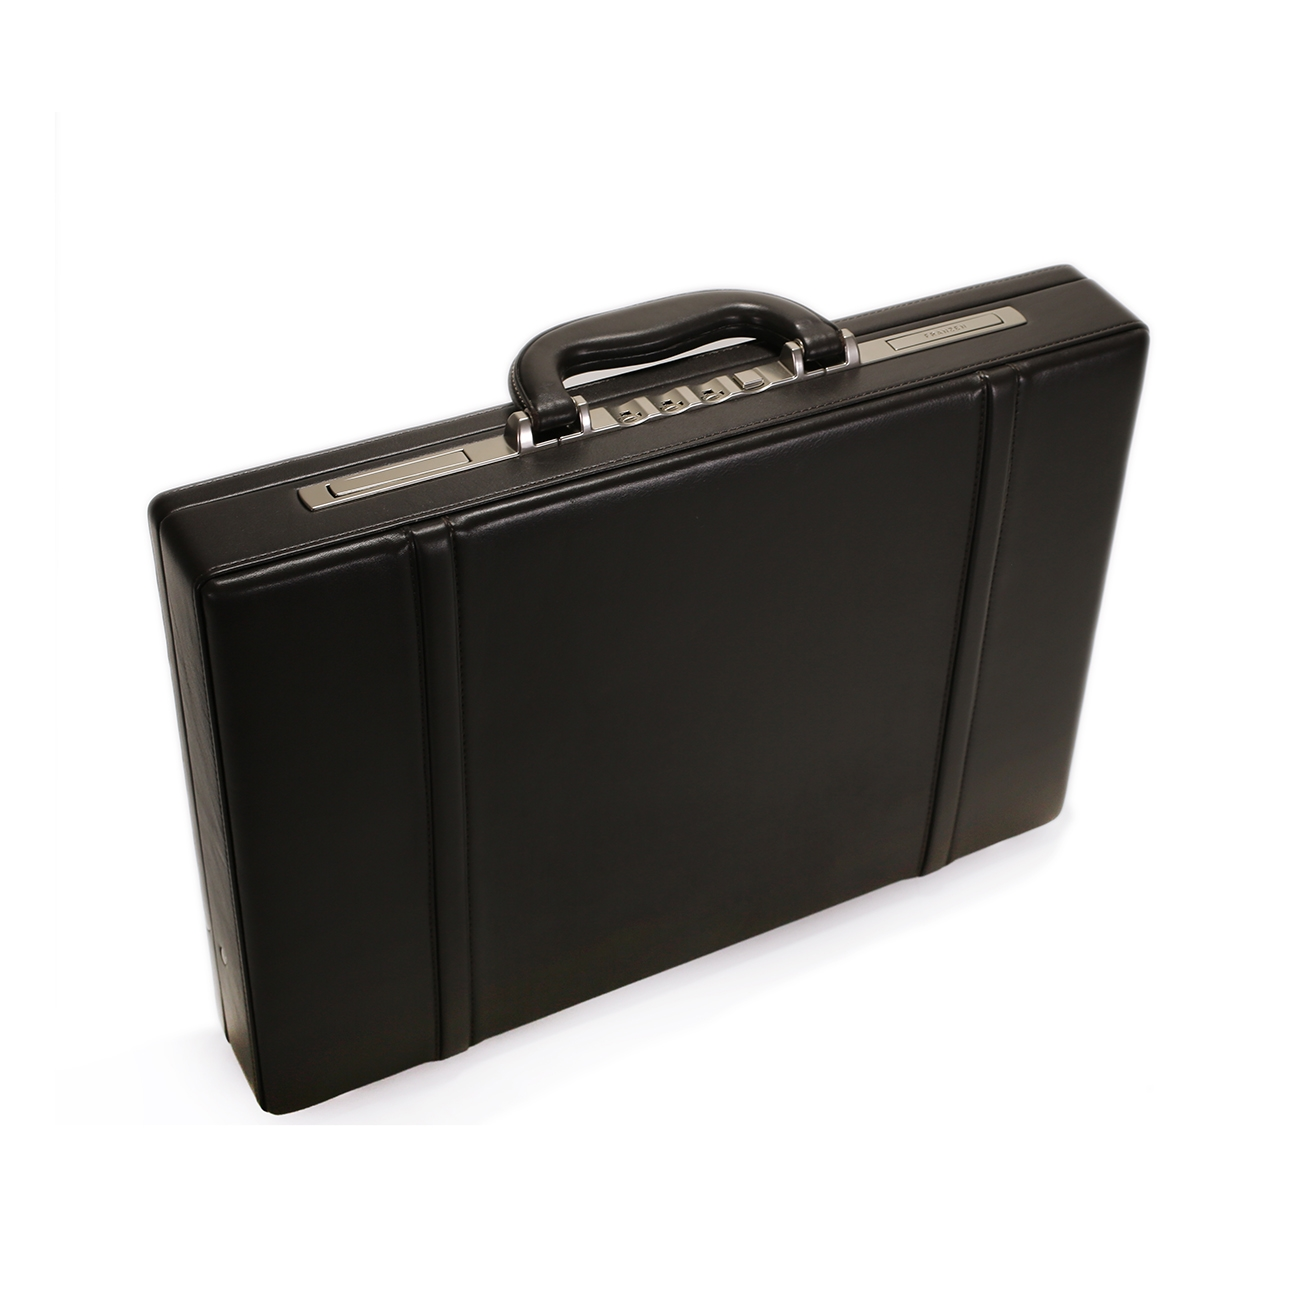 Leather Attache Case - CODE 131-0256N